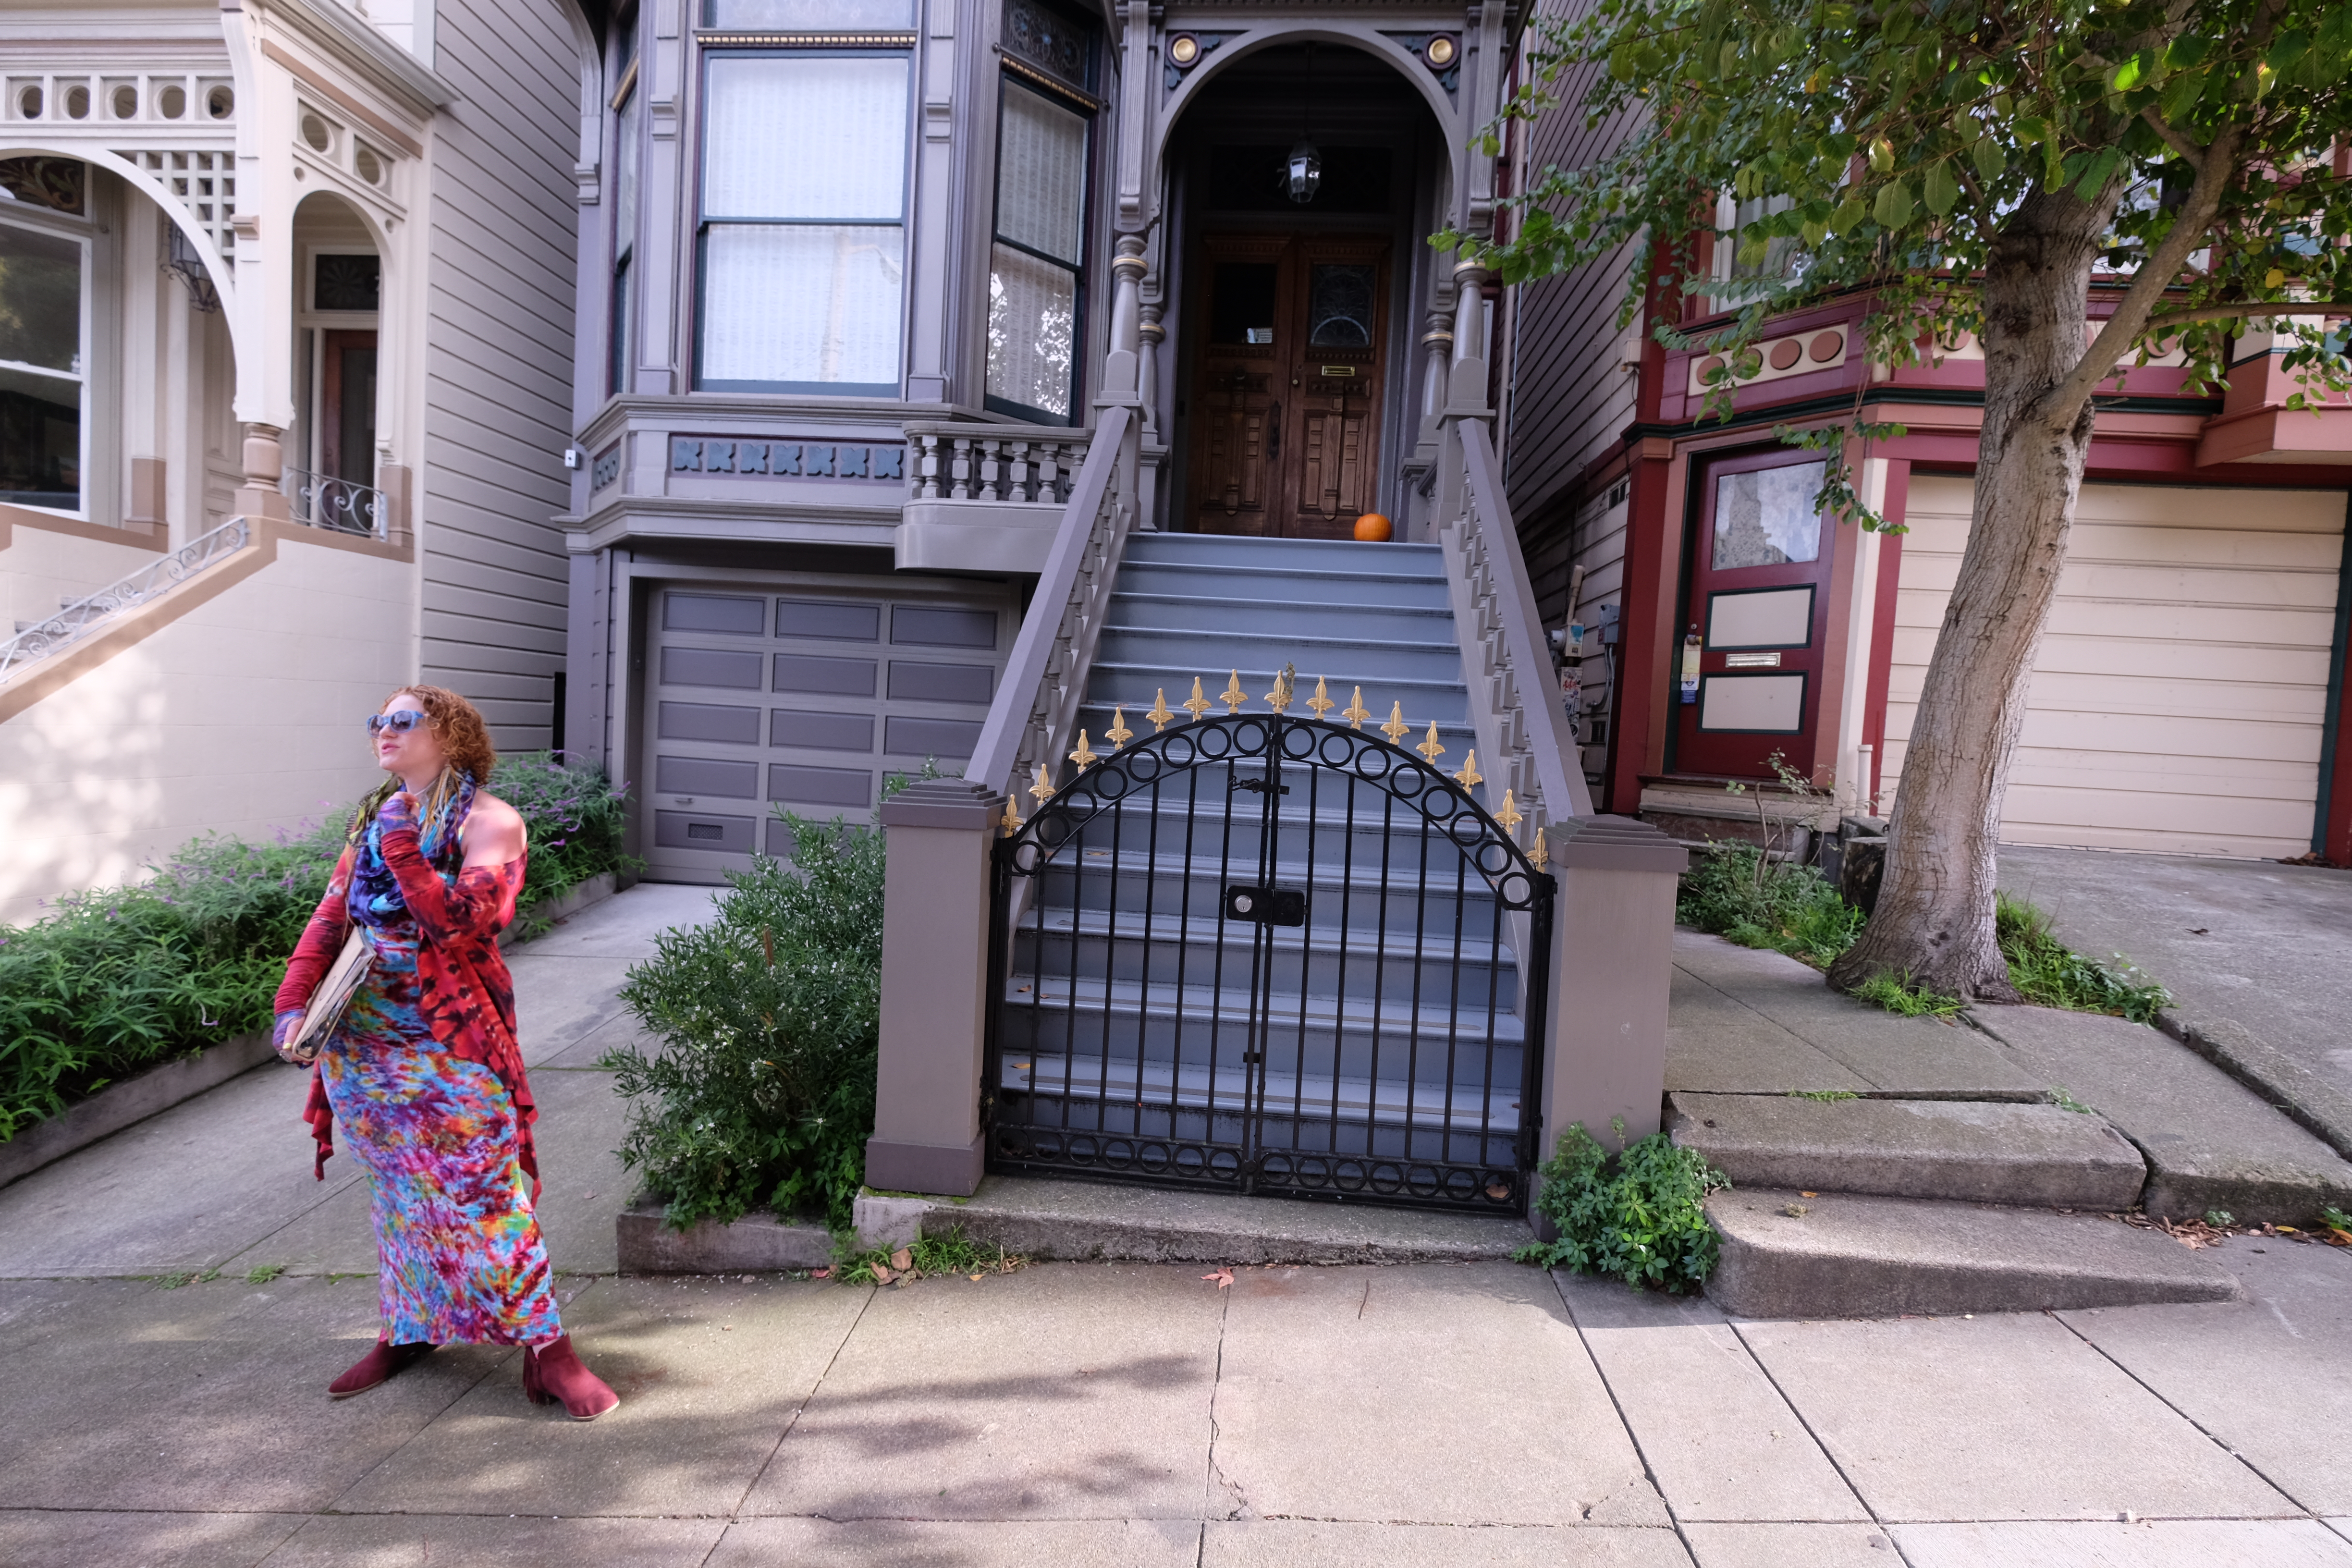 Sunny Powers does awesome tours of Haight-Ashbury in San Francisco. Love the retro outfit! - JIM BYERS PHOTO